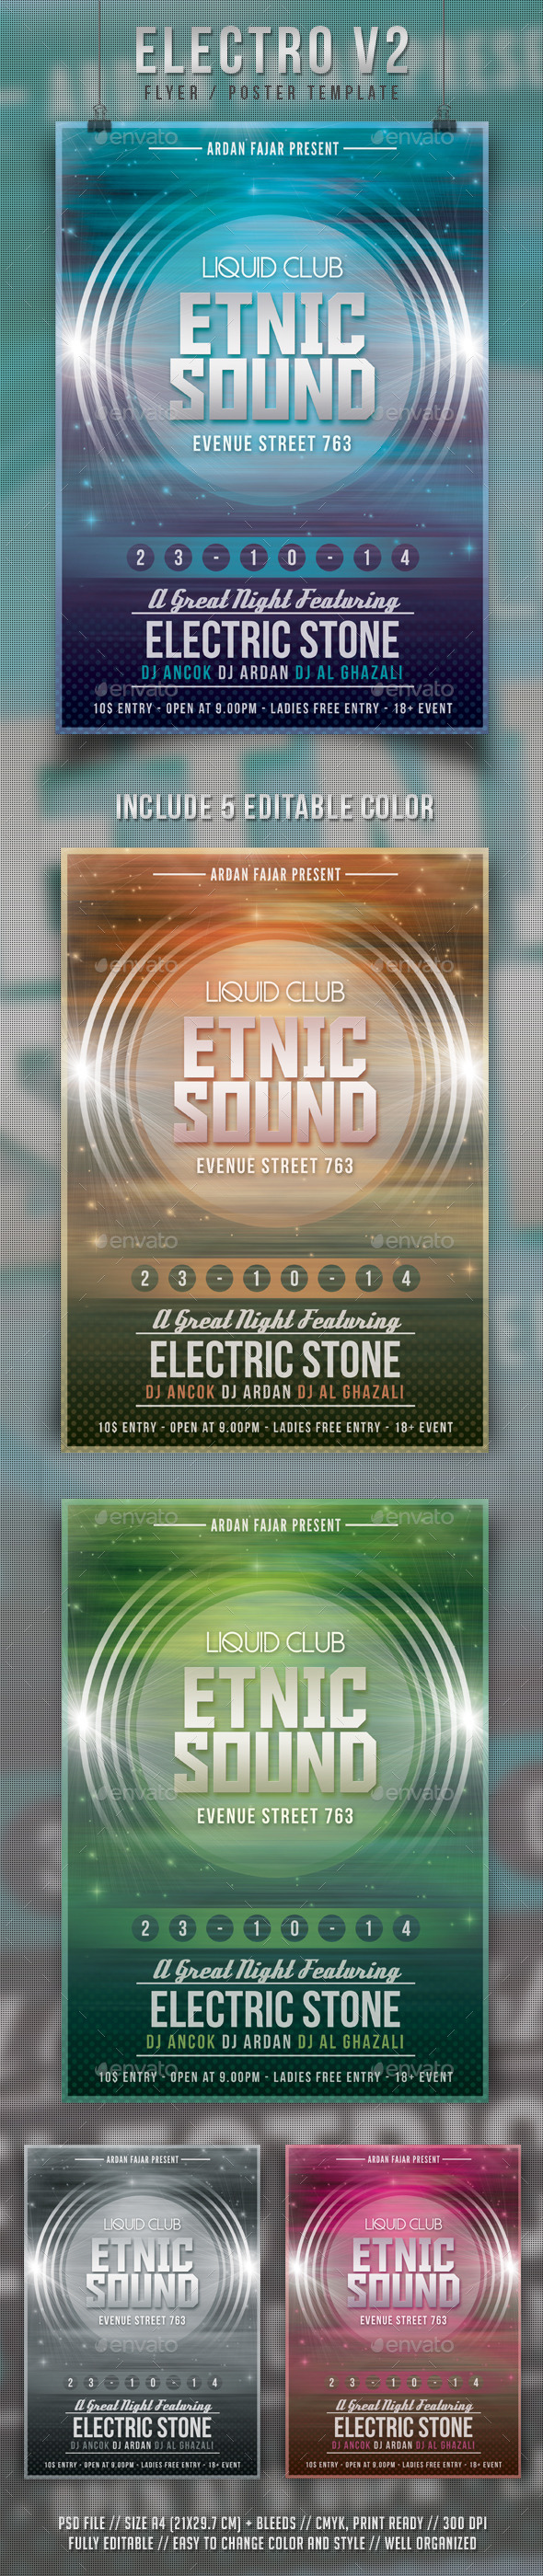 Electro V2 Flyer Template - Clubs & Parties Events